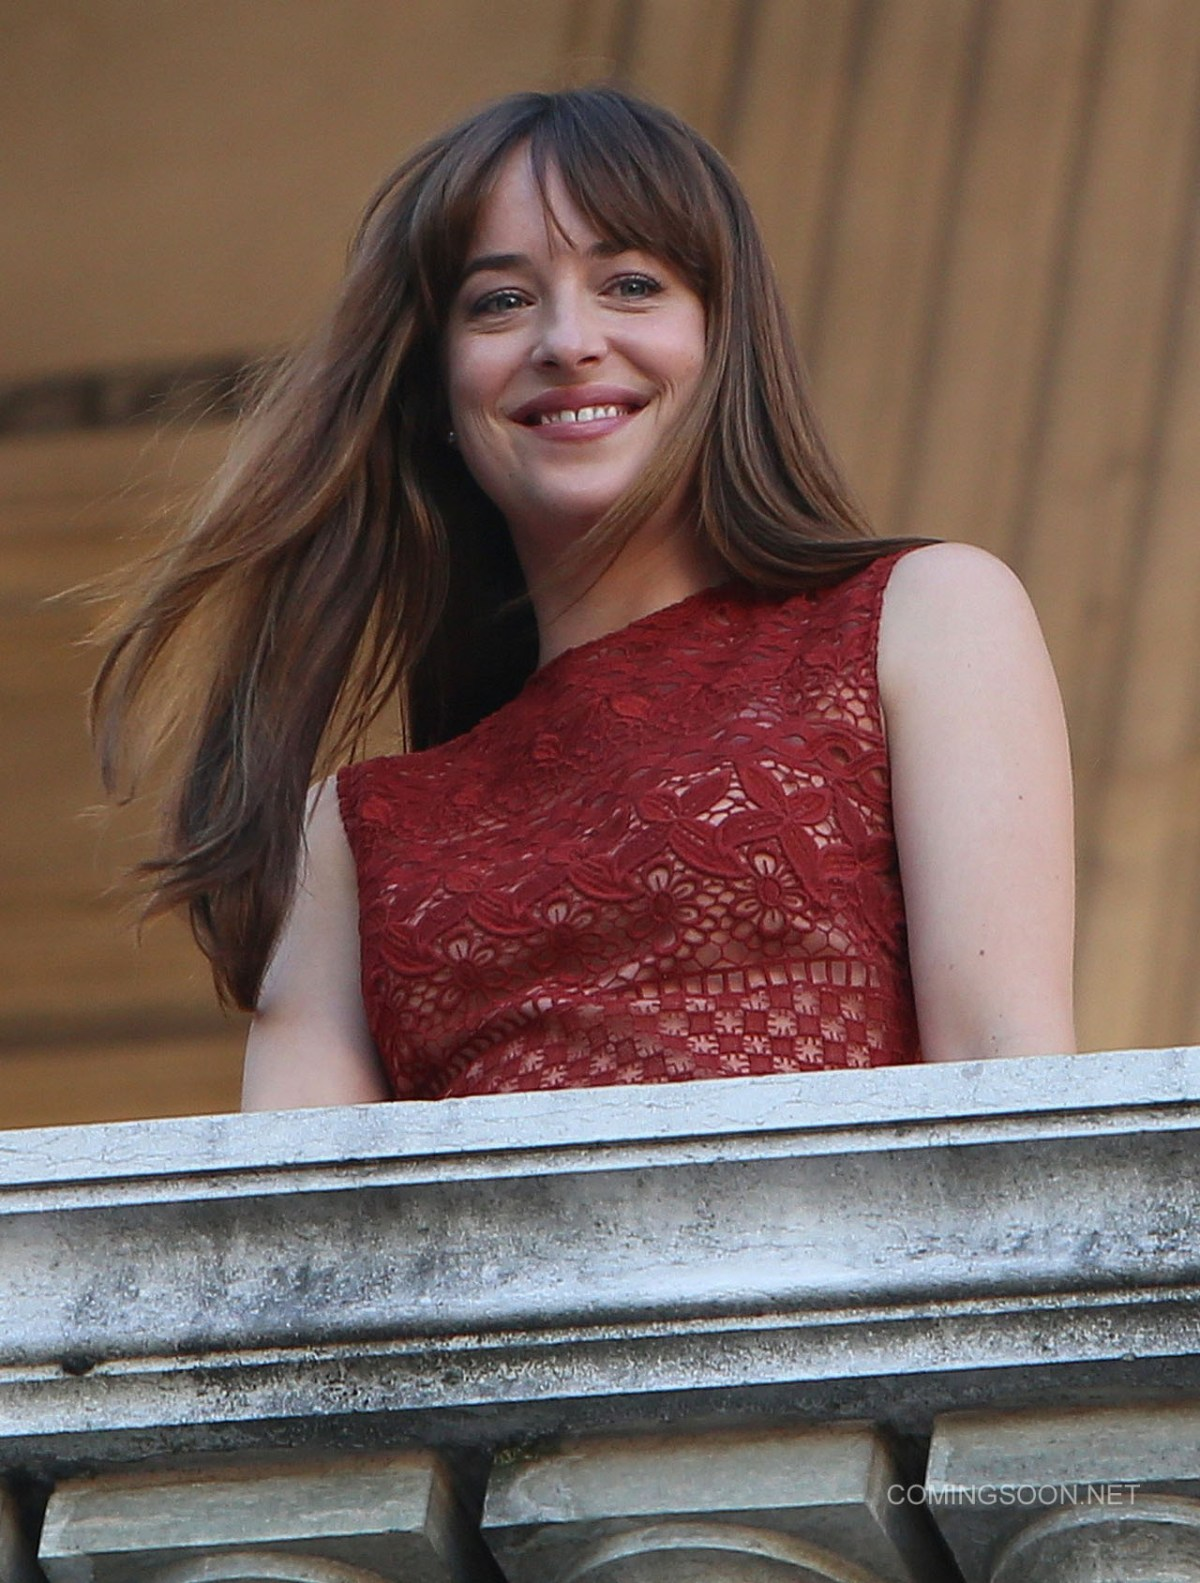 Filming on 'Fifty Shades Darker' takes place at Opera Garnier in Paris Featuring: Dakota Johnson Where: Paris, France When: 18 Jul 2016 Credit: WENN.com **Not available for publication in France, Belgium, Spain, Italy**